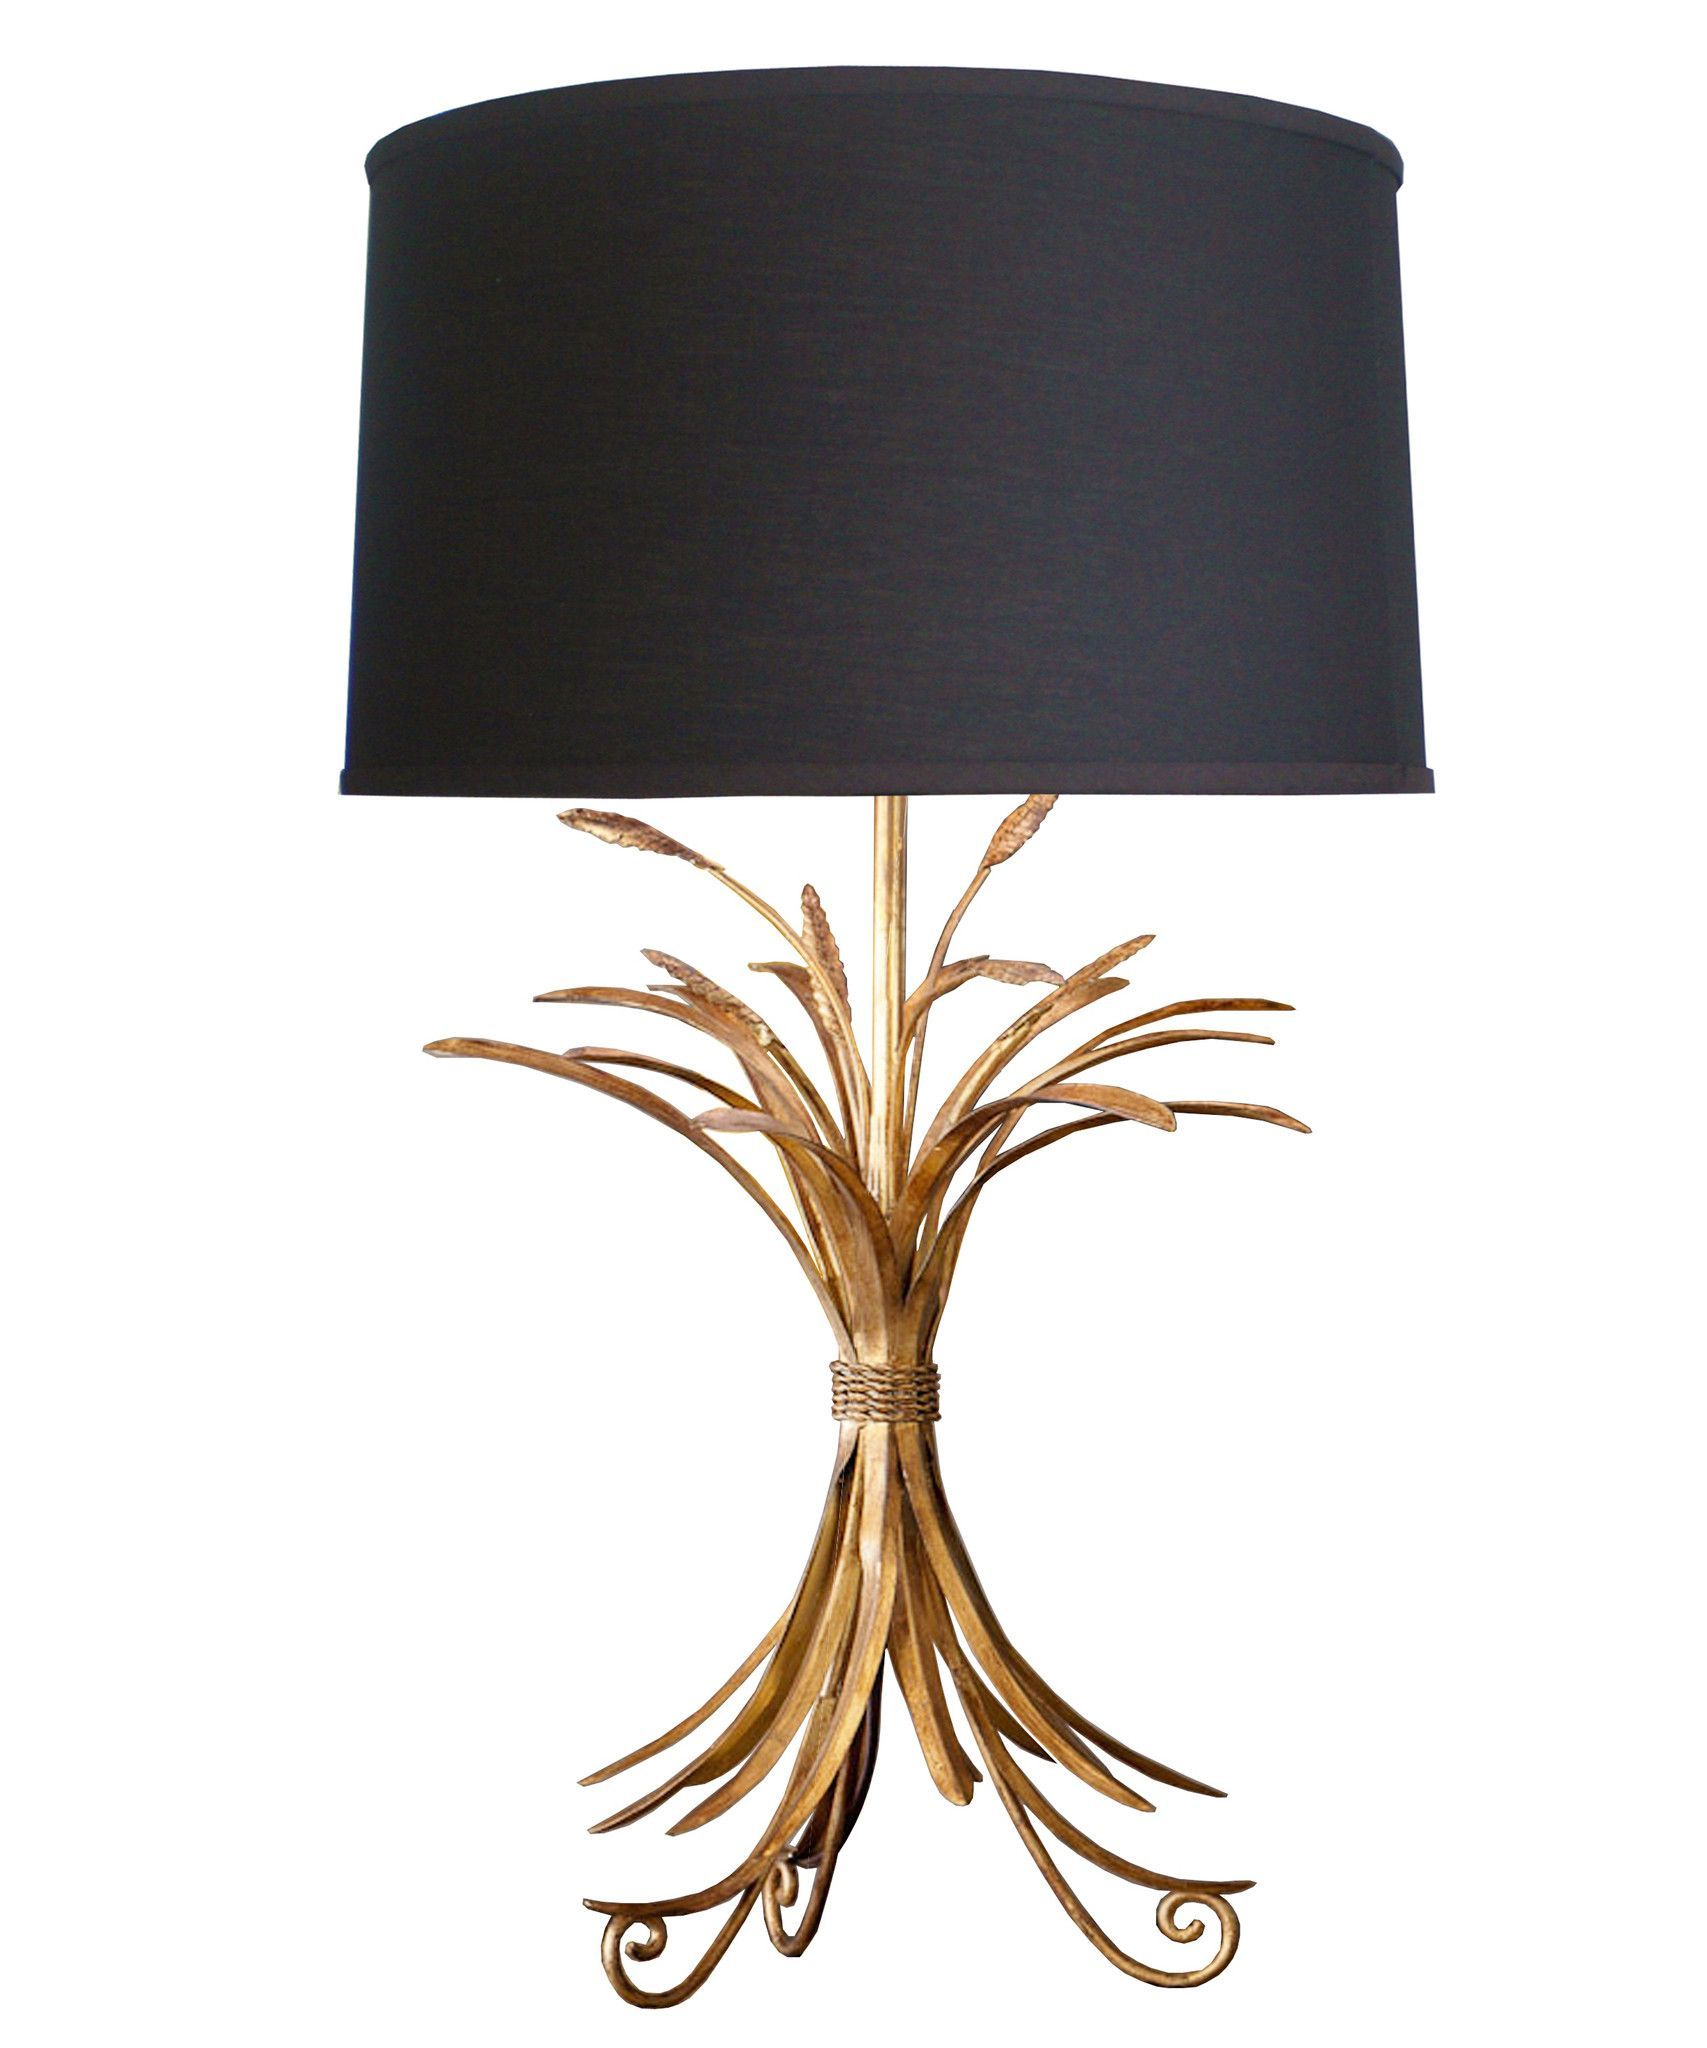 High Street Market Home Furnishings Accessories And Antiques Lamp Table Lamp Gold Table Lamp